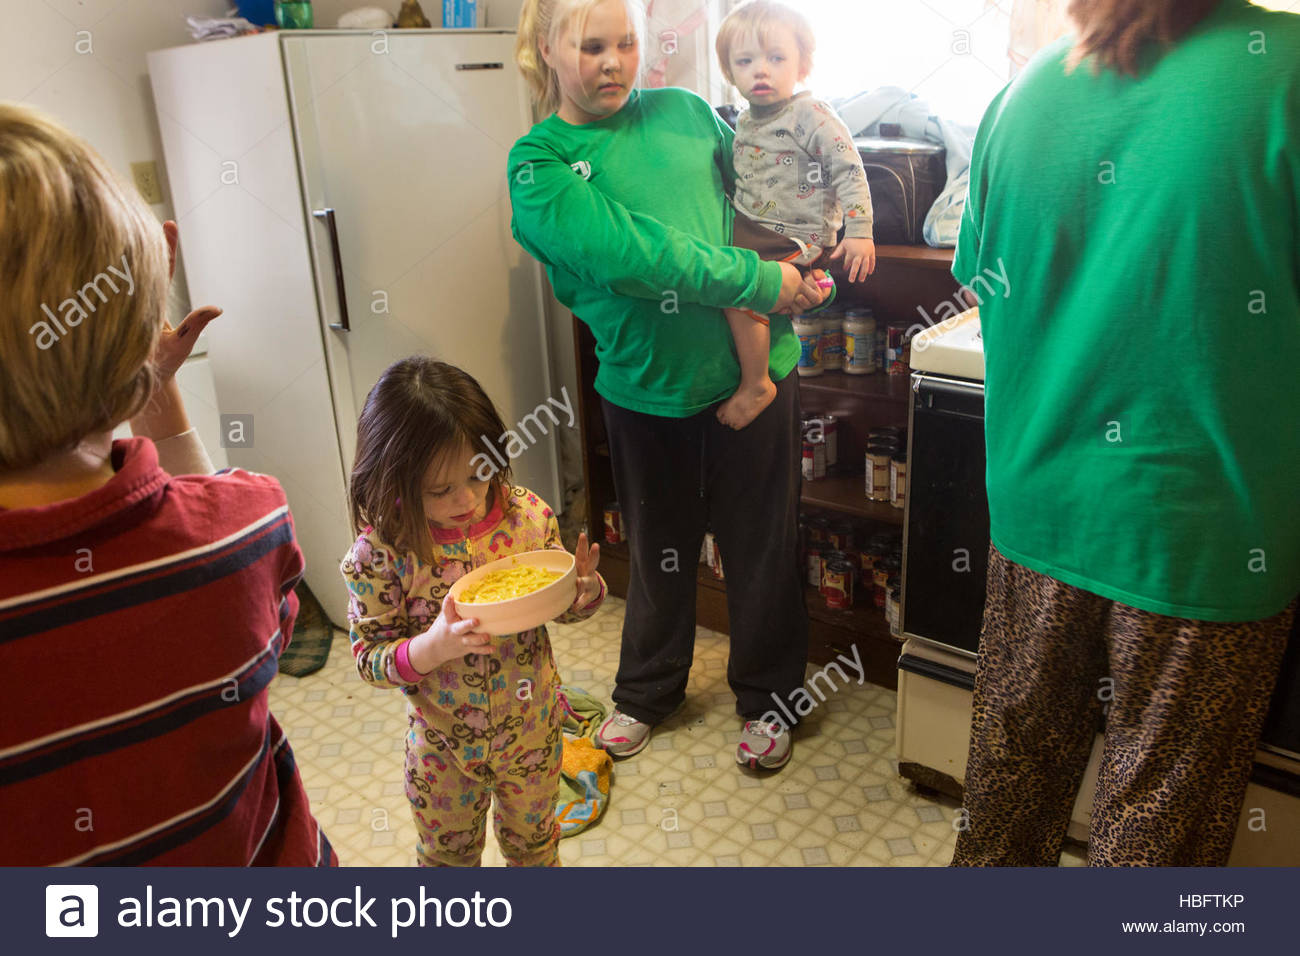 A family, classified as food insecure, eats dinner. - Stock Image